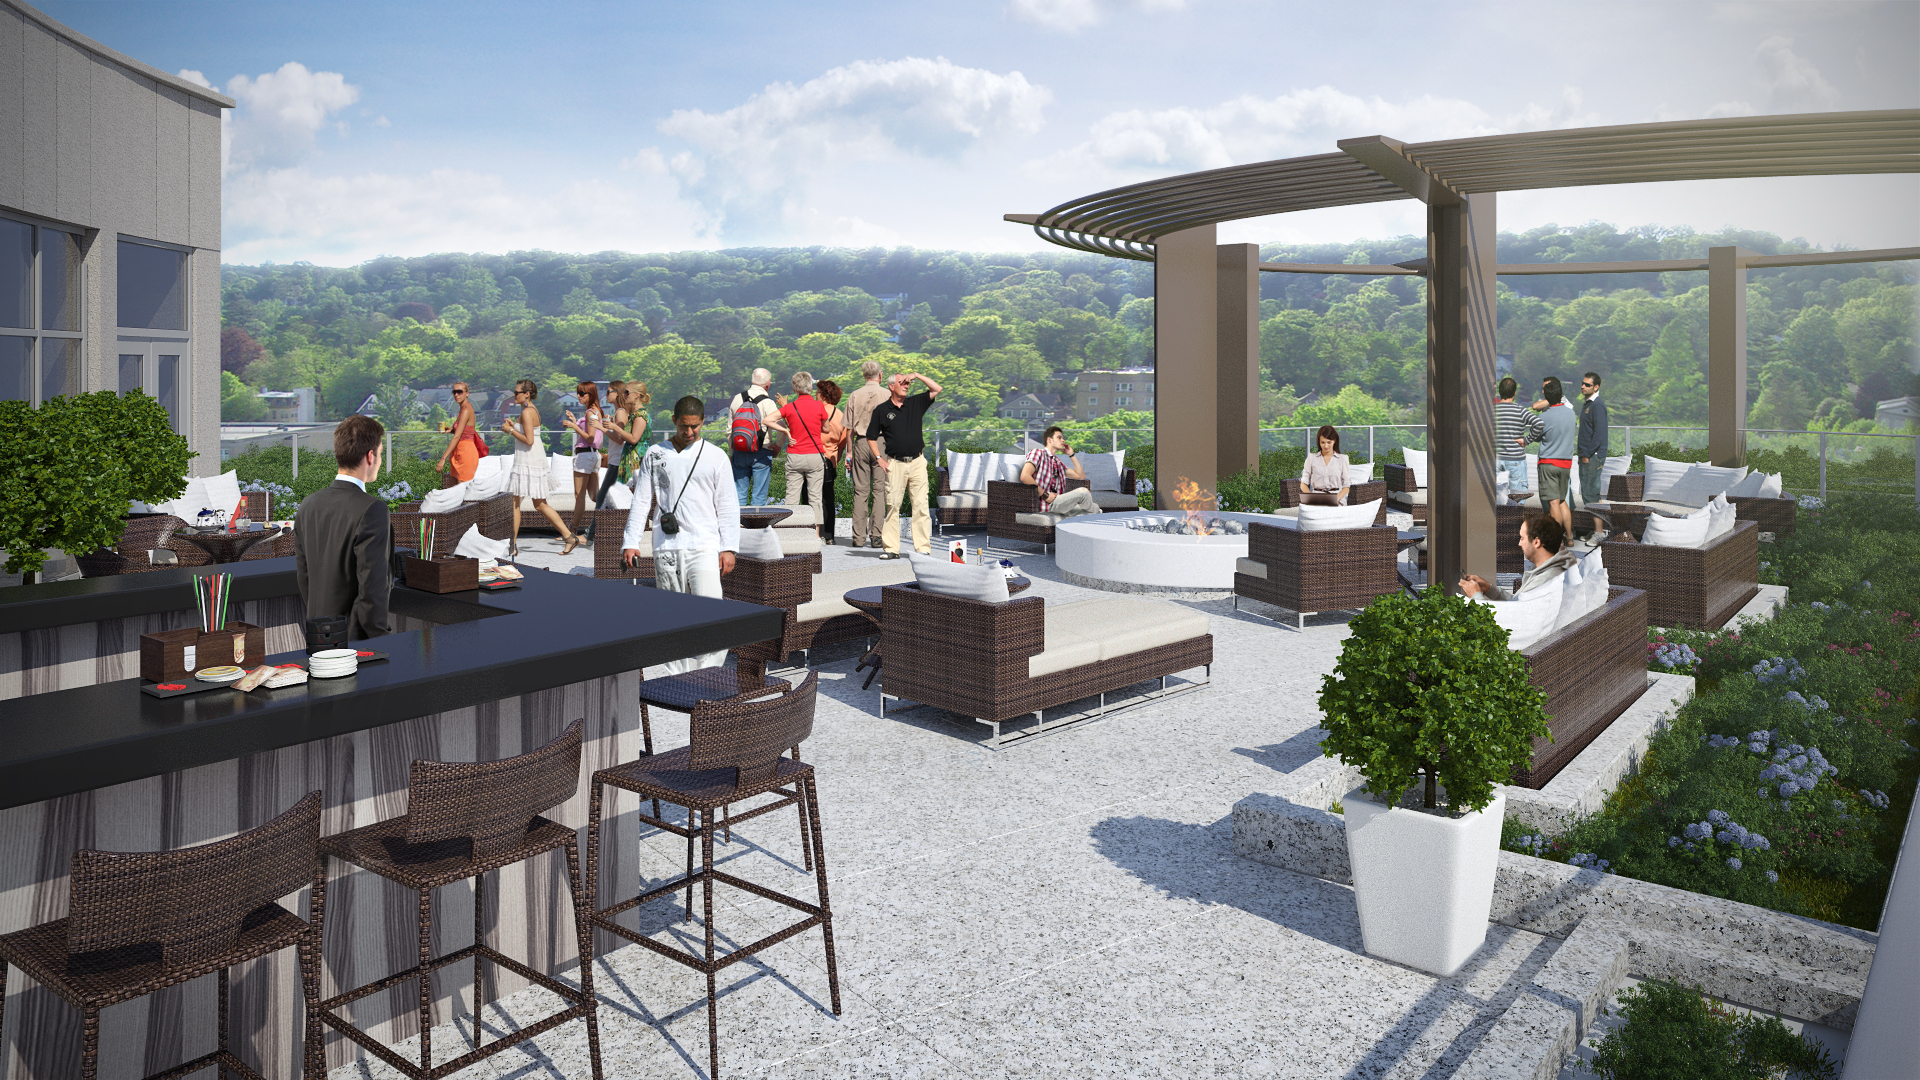 Rendering of the west view from the rooftop bar at The MC hotel in Montclair. Credit: BOGZA